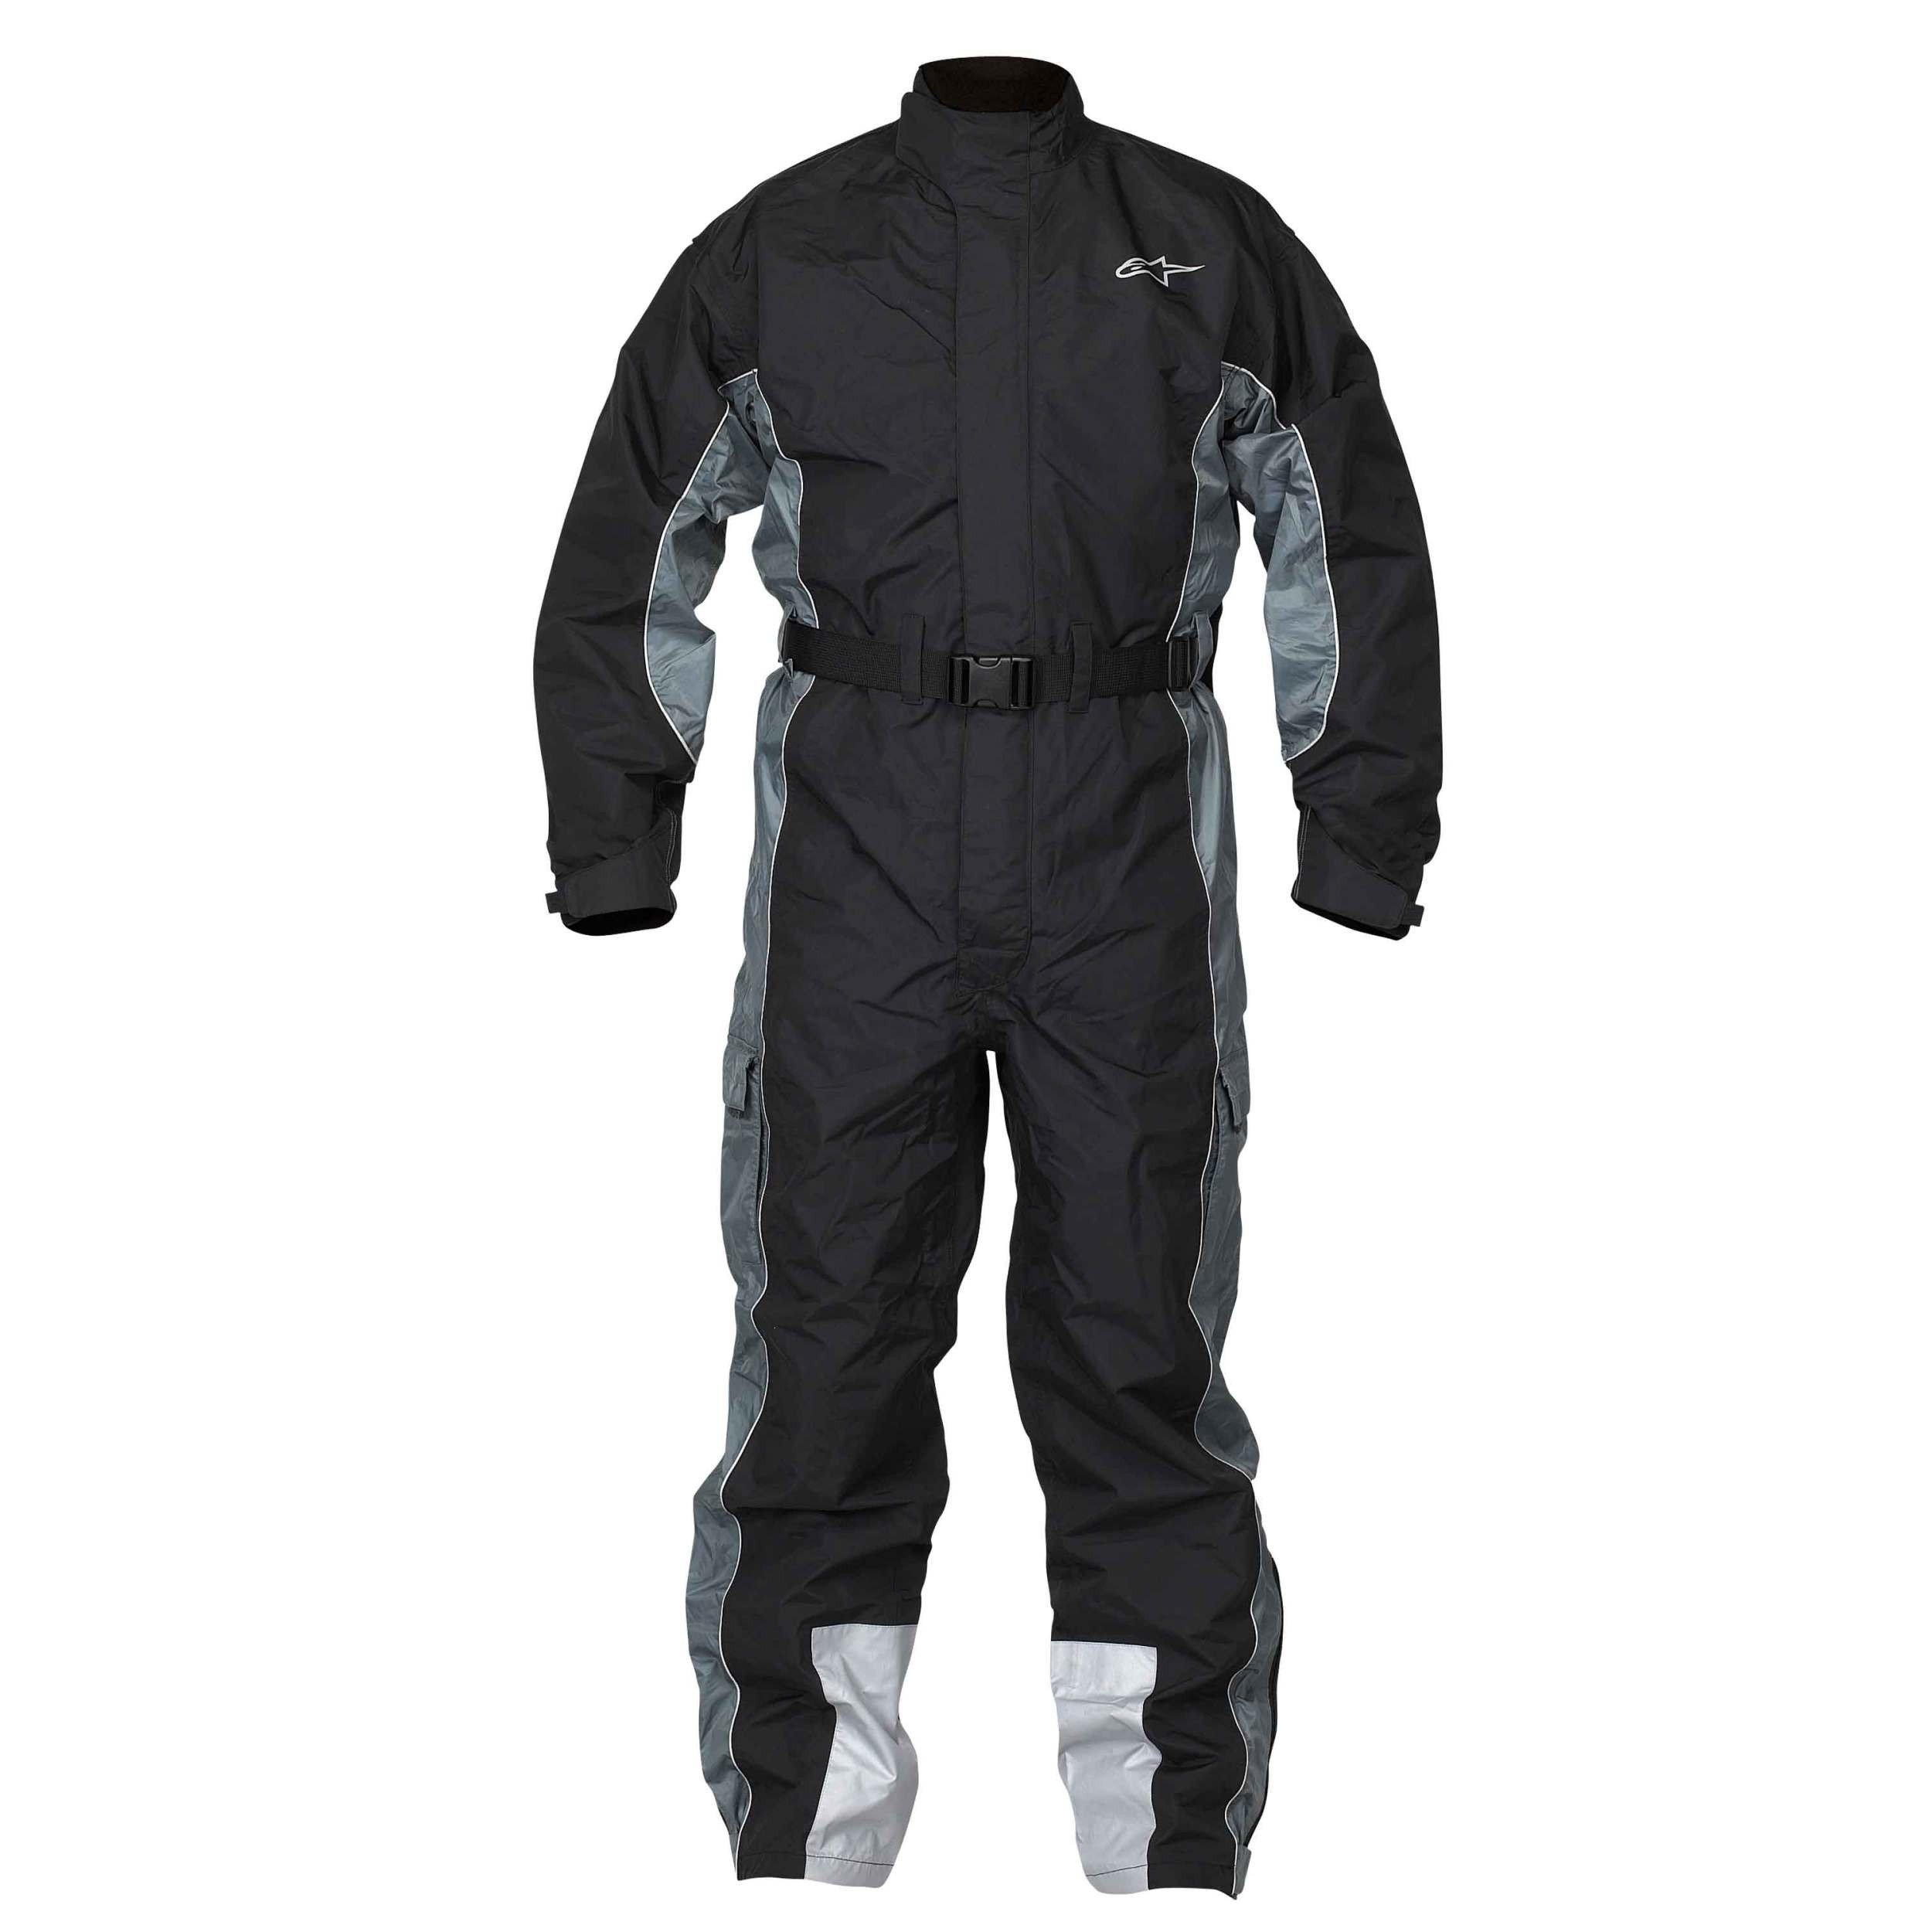 Alpinestars El Nino Rain Suit 1PC Black XXL